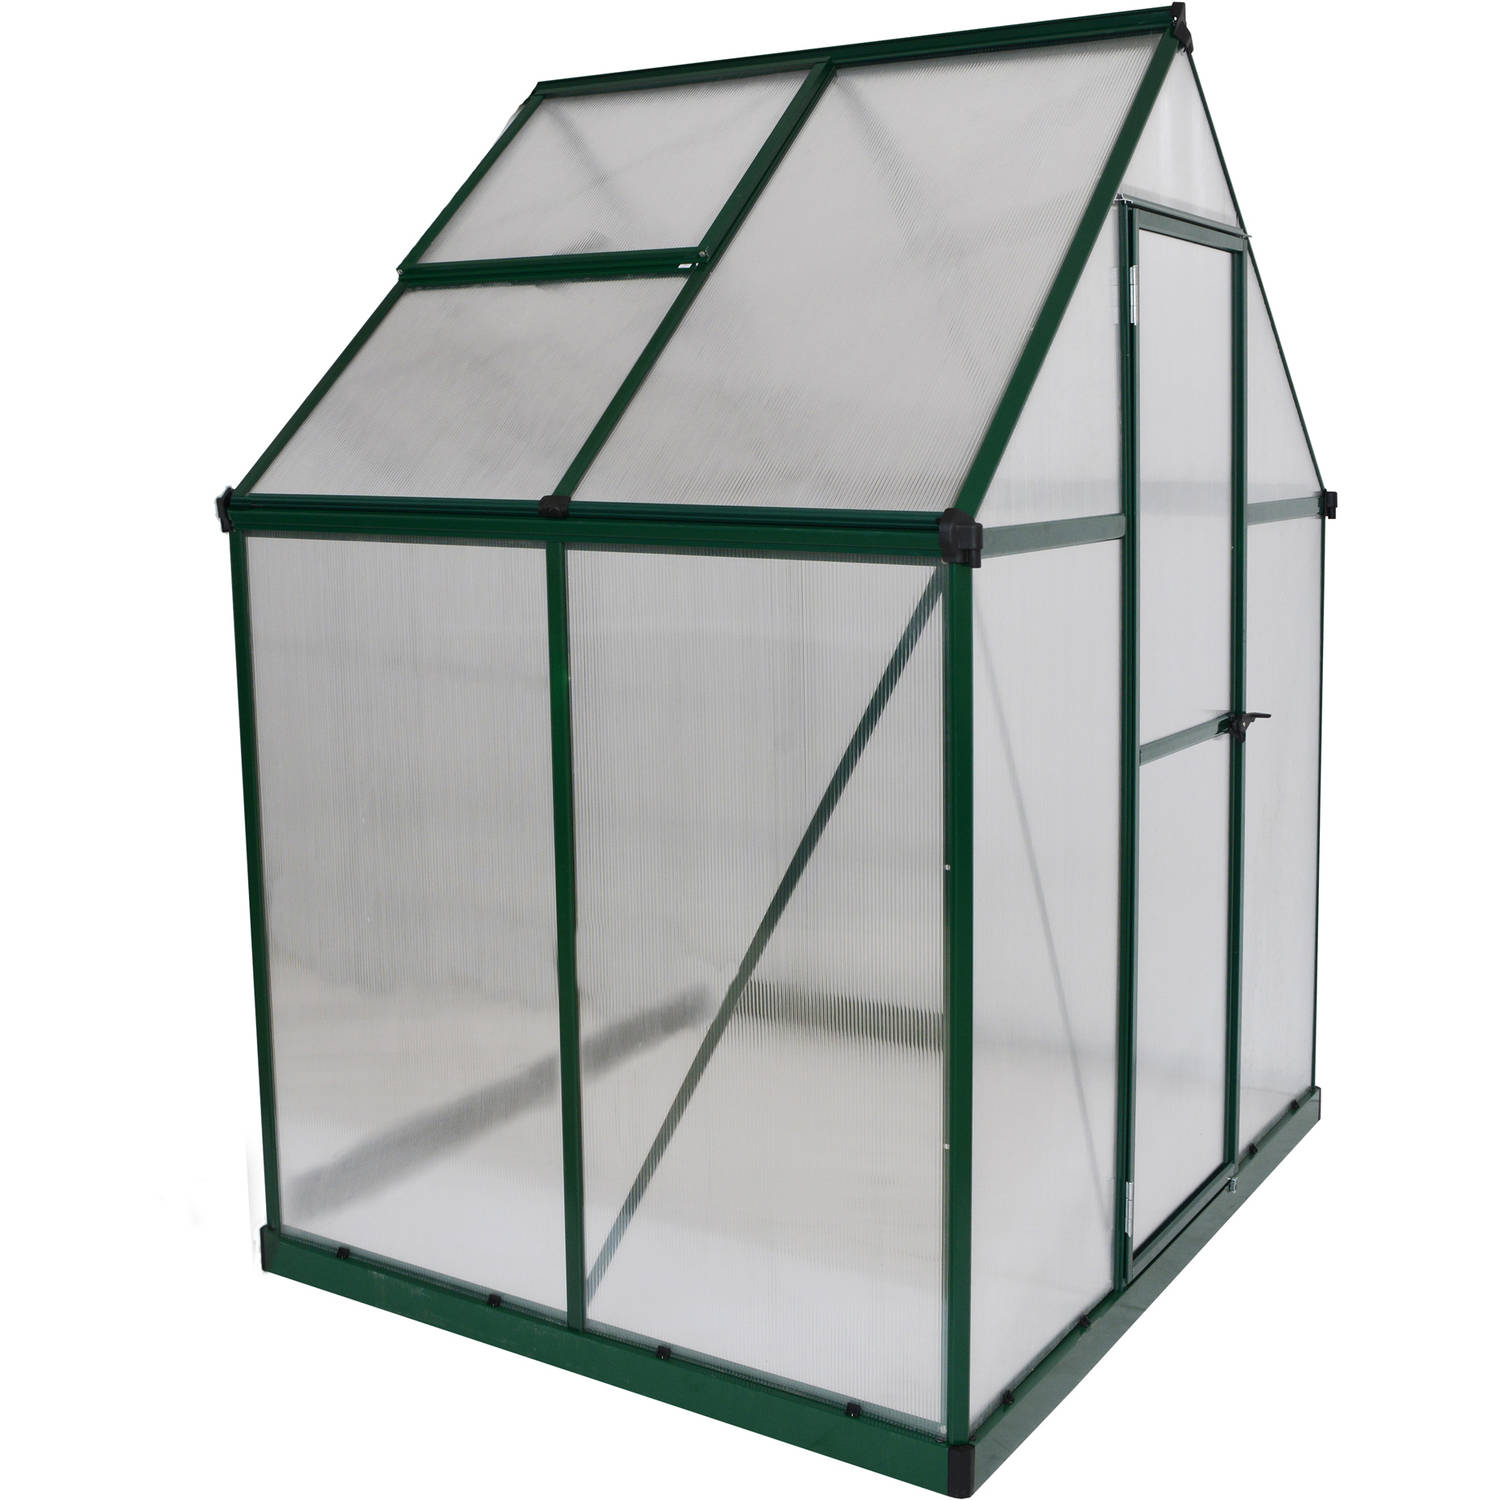 Mythos 6' x 4' Greenhouse, Green by Greenhouses